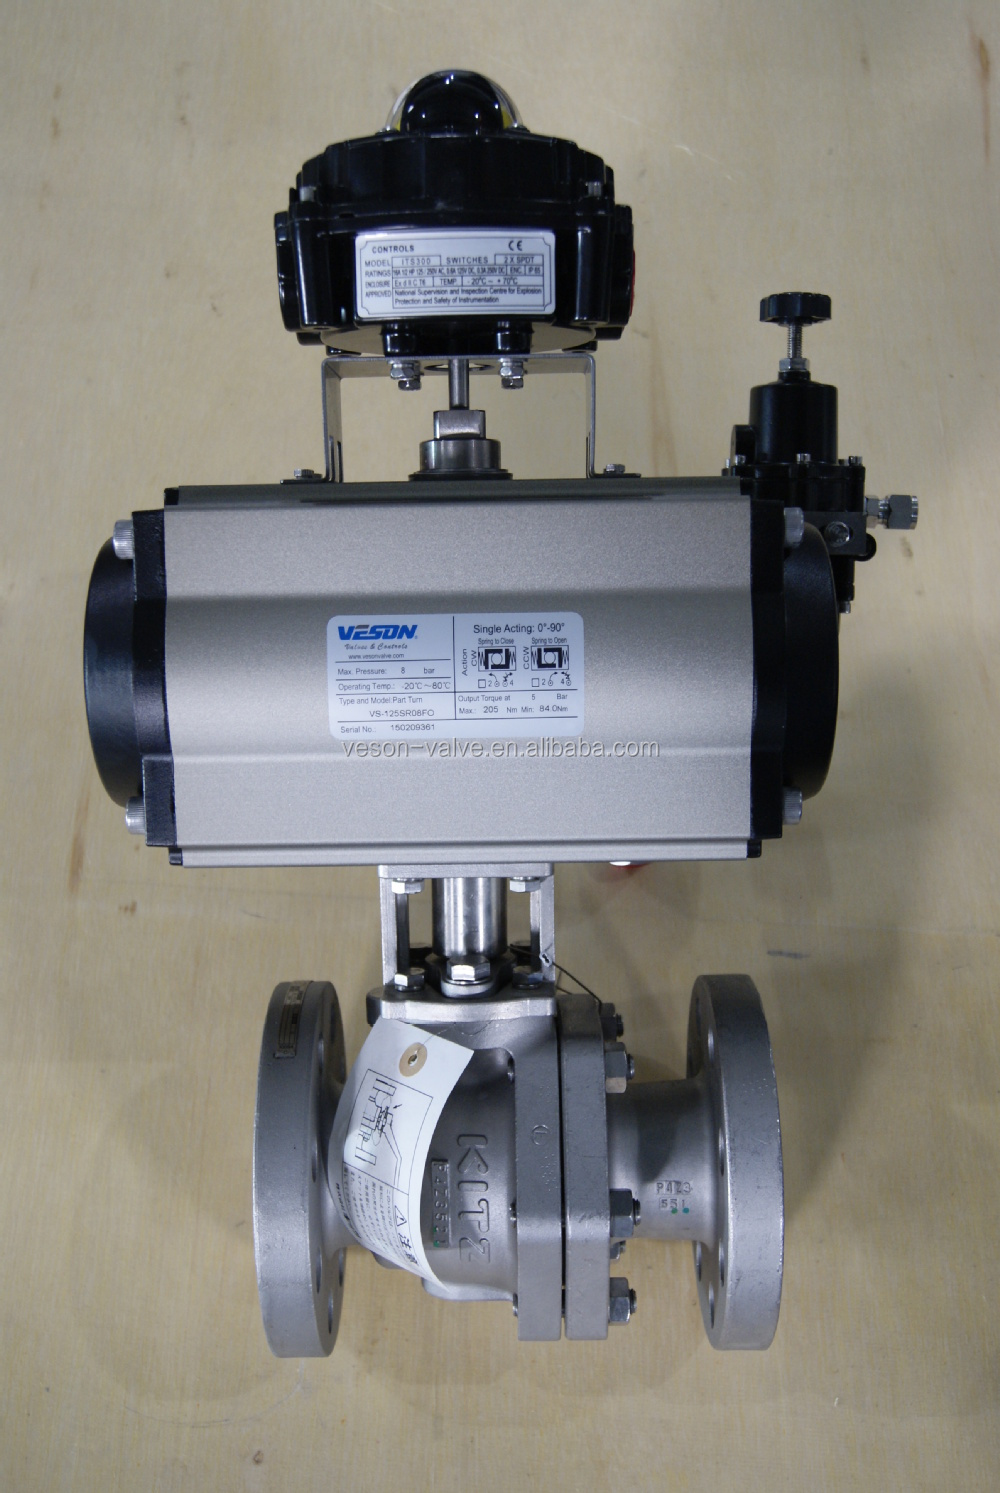 Kitz Ball Valve With Spring Return Pneumatic Actuator